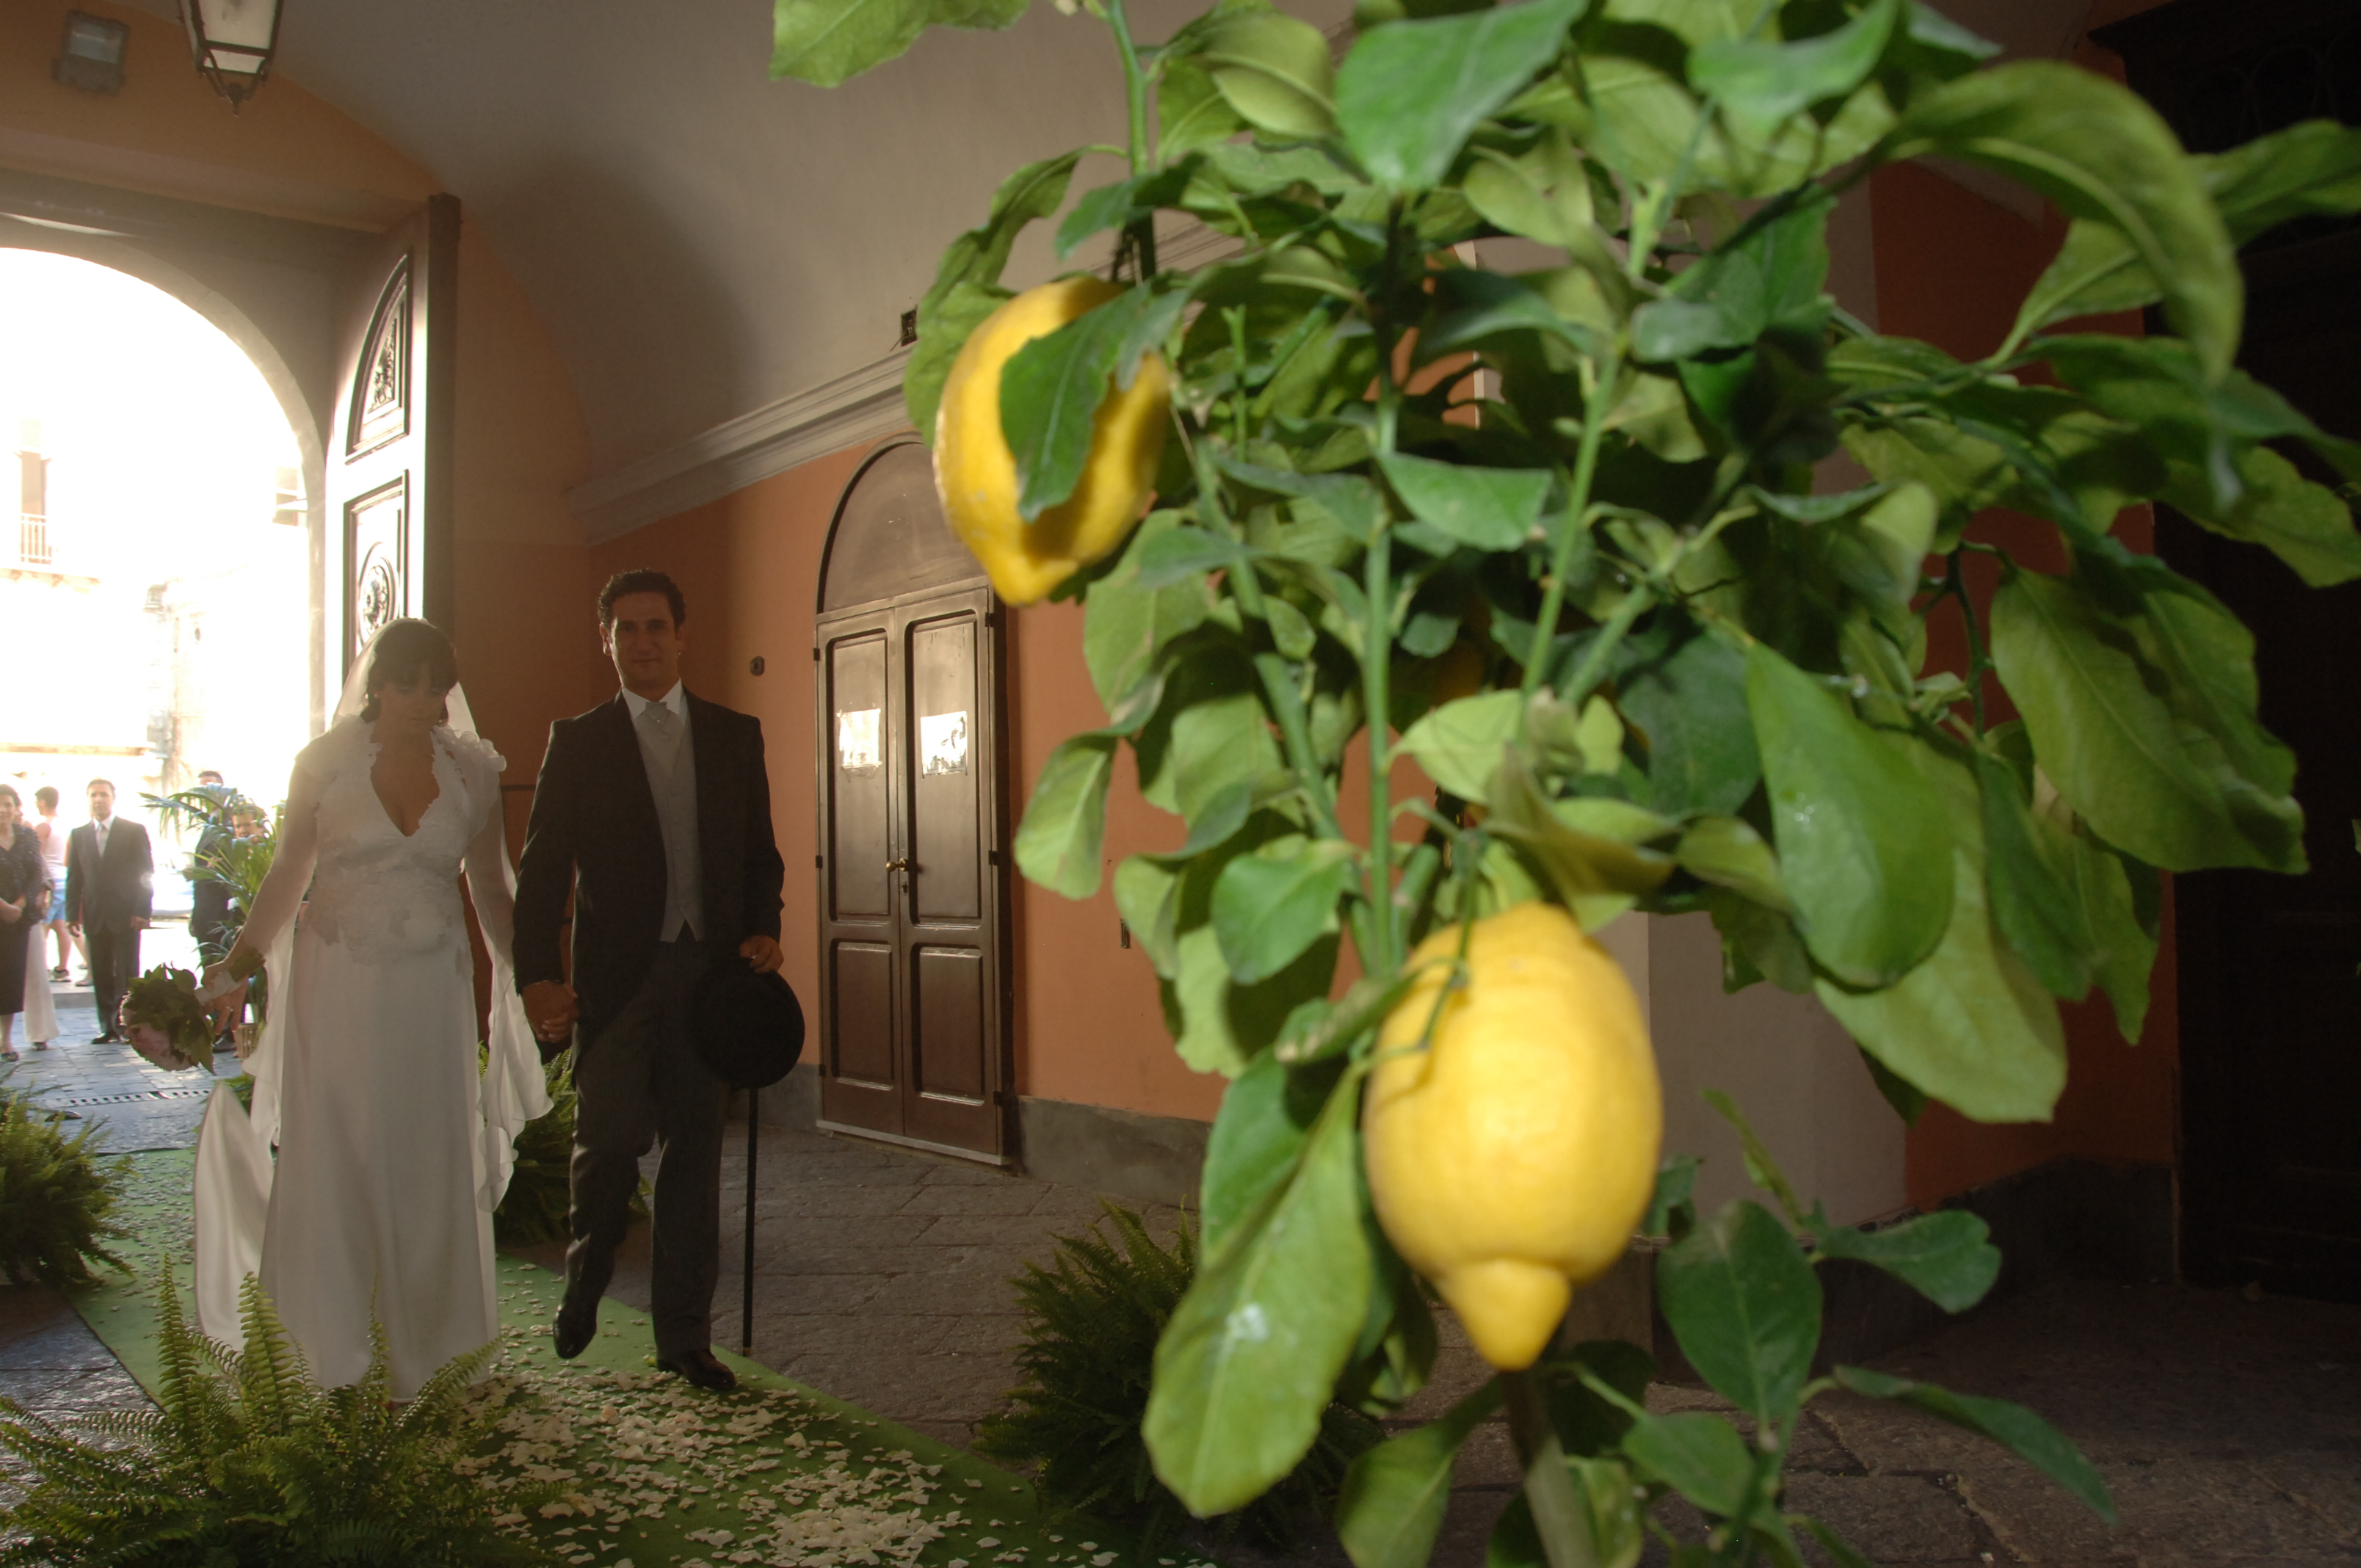 http://www.weddingamalfi.com/wp-content/uploads/Enza-and-Mario-Amalfi-Coast-lemons-decorations.jpg